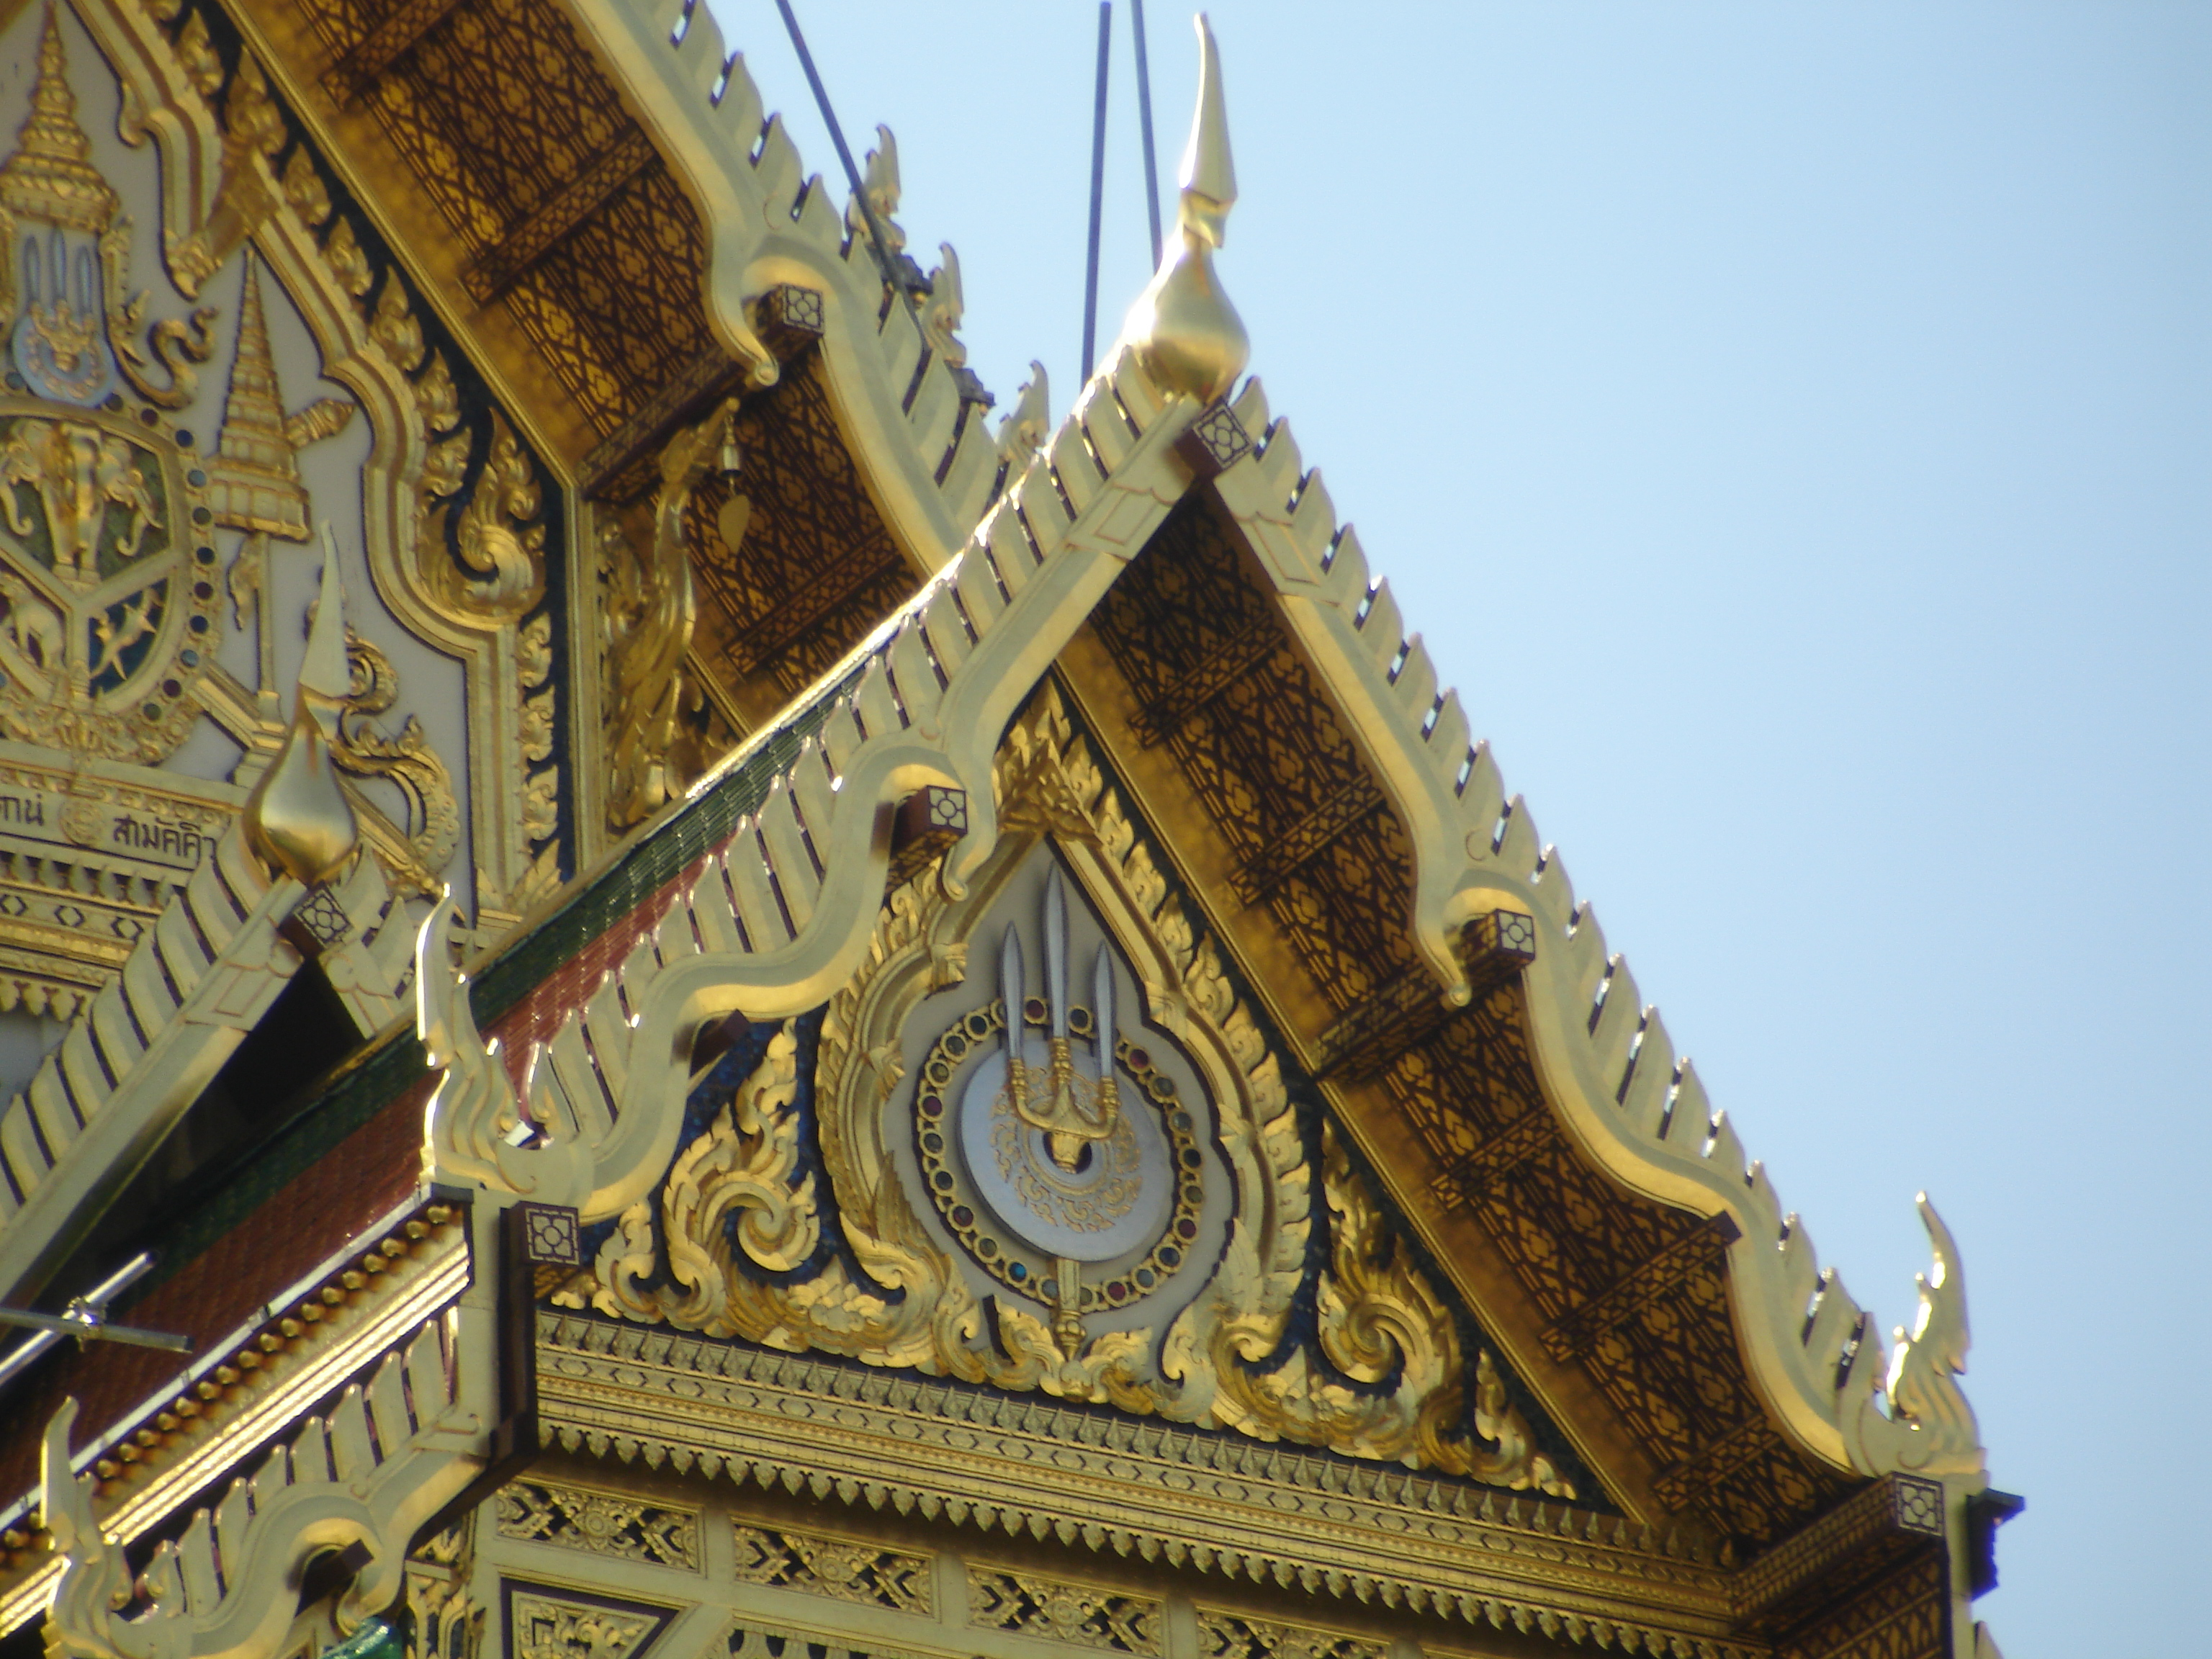 Cipher of the Royal House of Chakri at the Grand Palace in Bangkok. Photo taken by Mark Jochim on January 8, 2006.